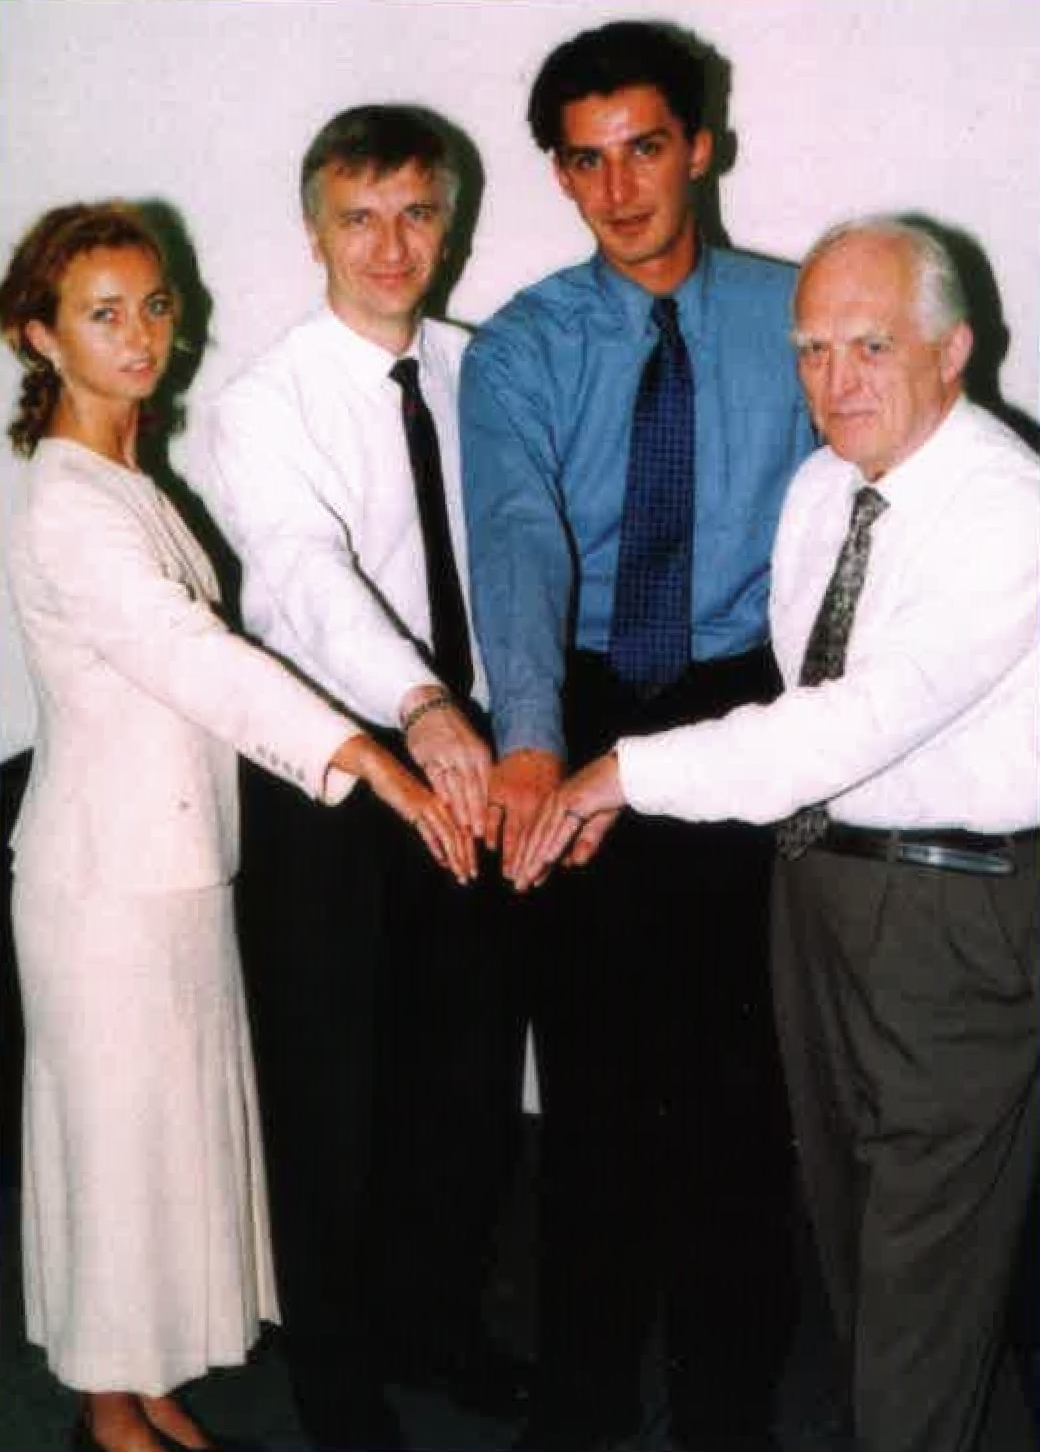 The small ring worn by these Canadian engineers is a symbol of their professional oath to uphold the public interest. From left, Nataliya Hearn, Olev Maimets, Sini Stojicic and Lem Maimets.